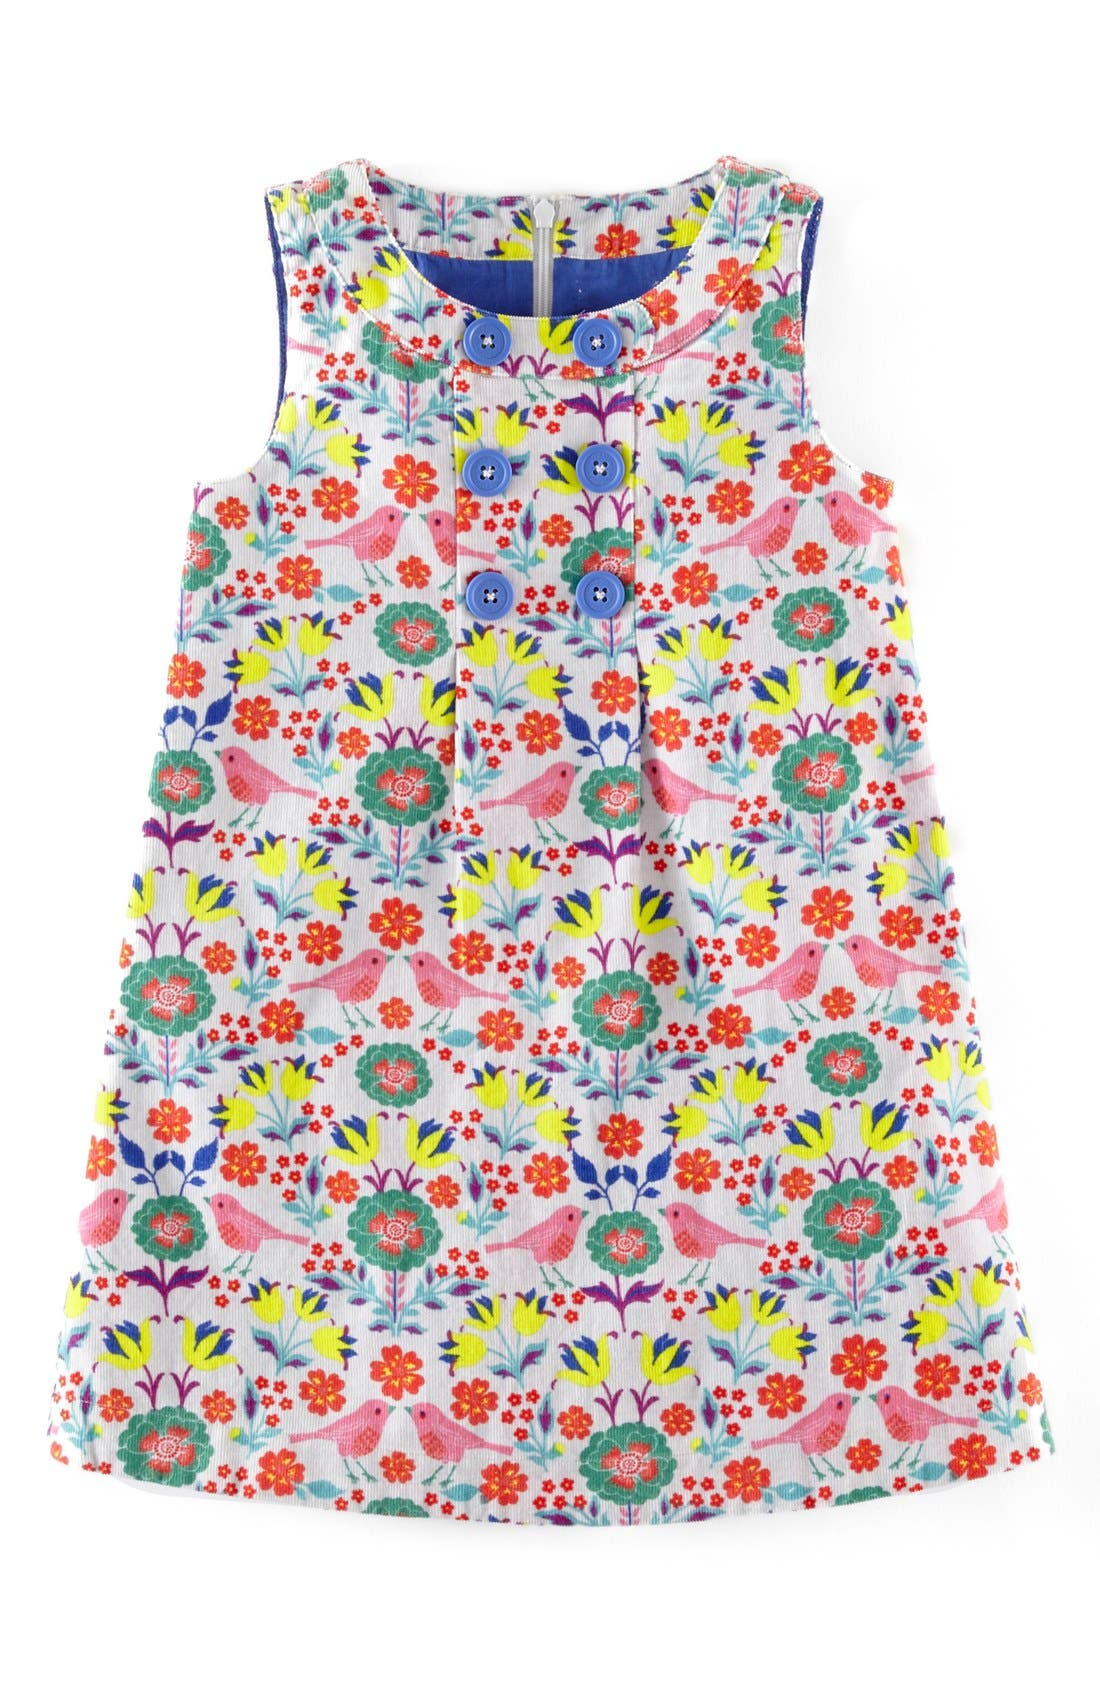 Alternate Image 1 Selected - Mini Boden Sleeveless Corduroy Dress (Toddler Girls, Little Girls & Big Girls)